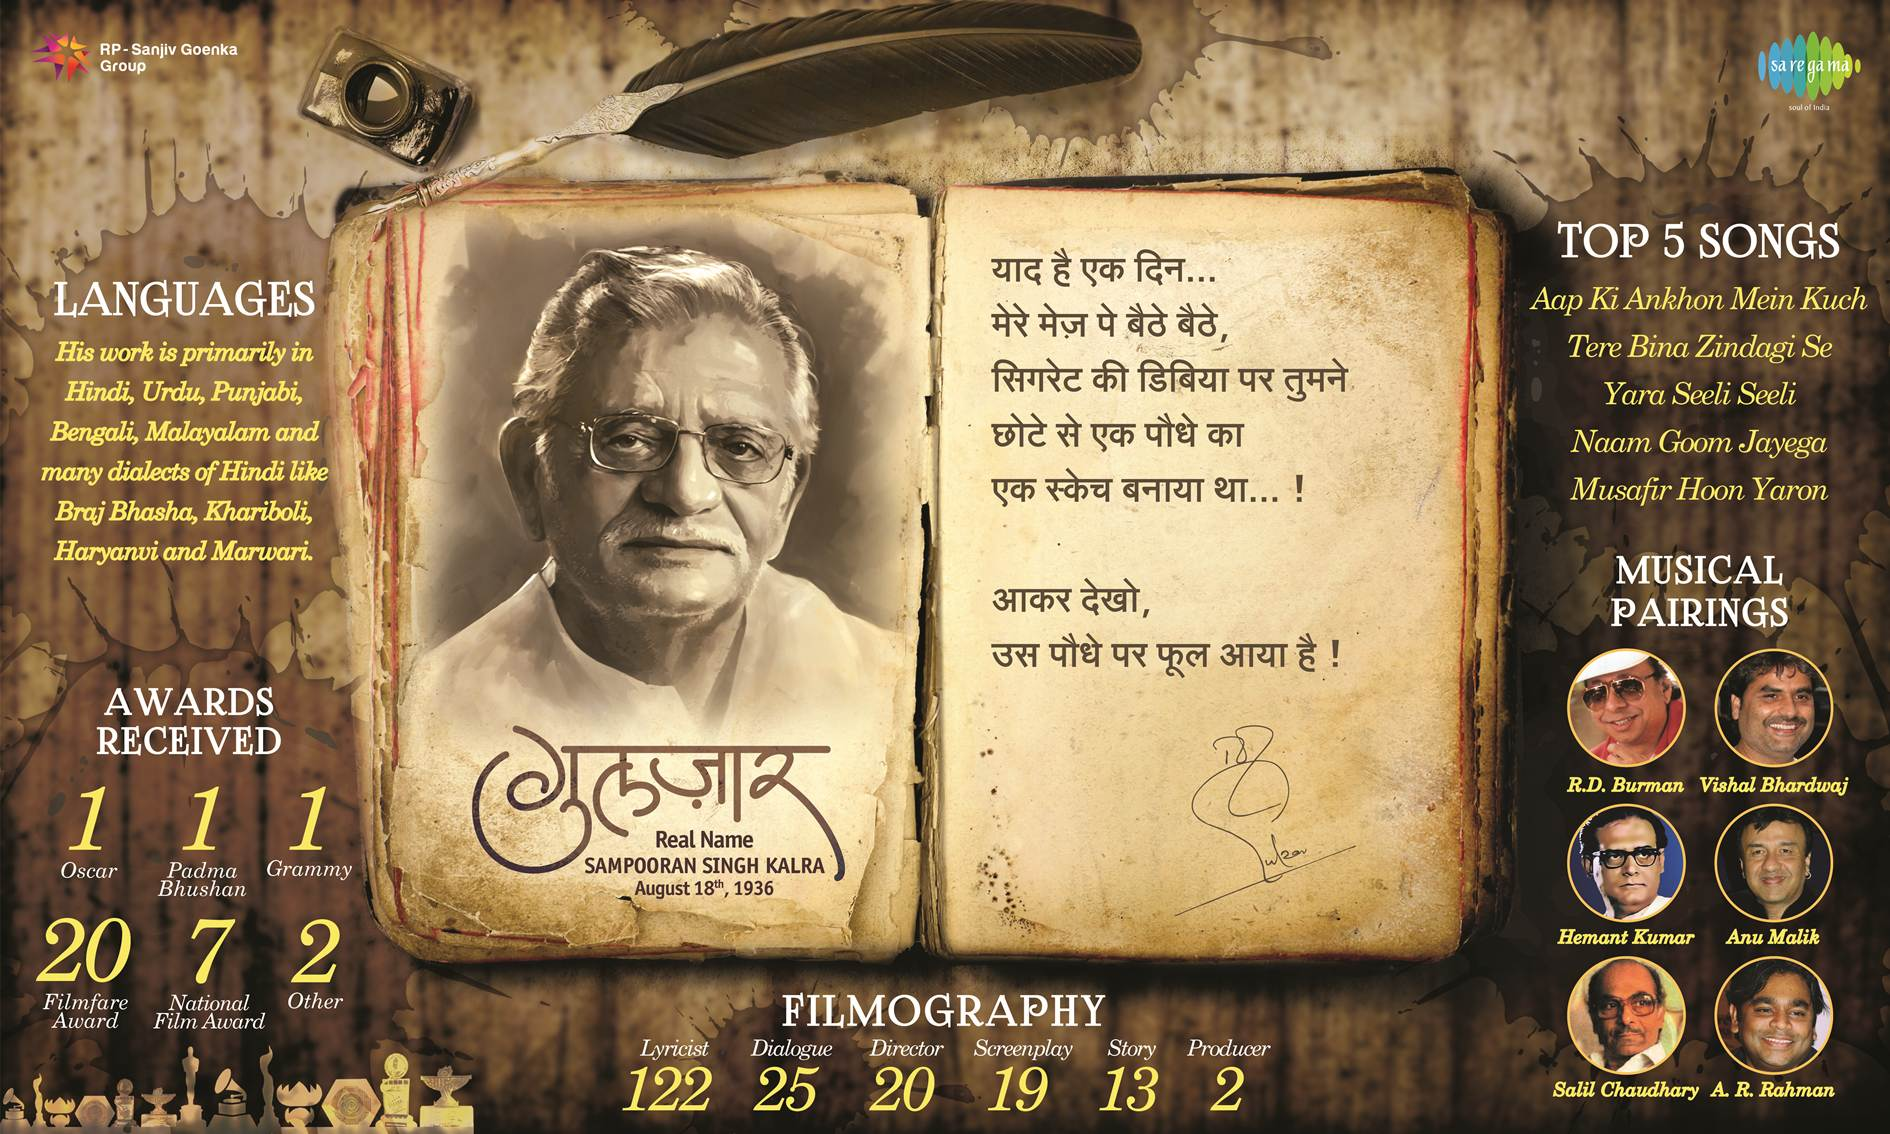 Gulzar Saab's Infographic by Saregama on his 81st Birthday